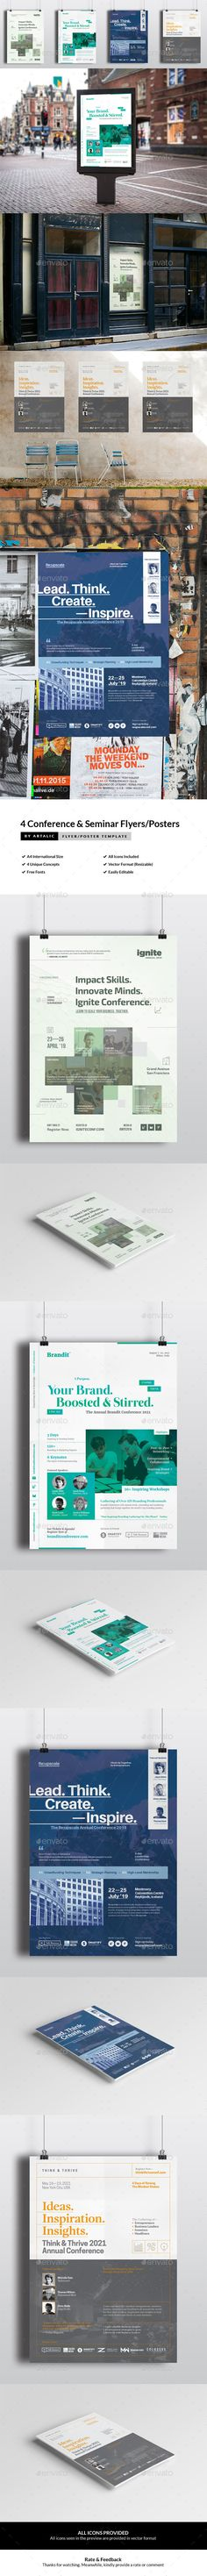 4 Conference \ Seminar Event Roll-up Banners Templates InDesign - workshop flyer template